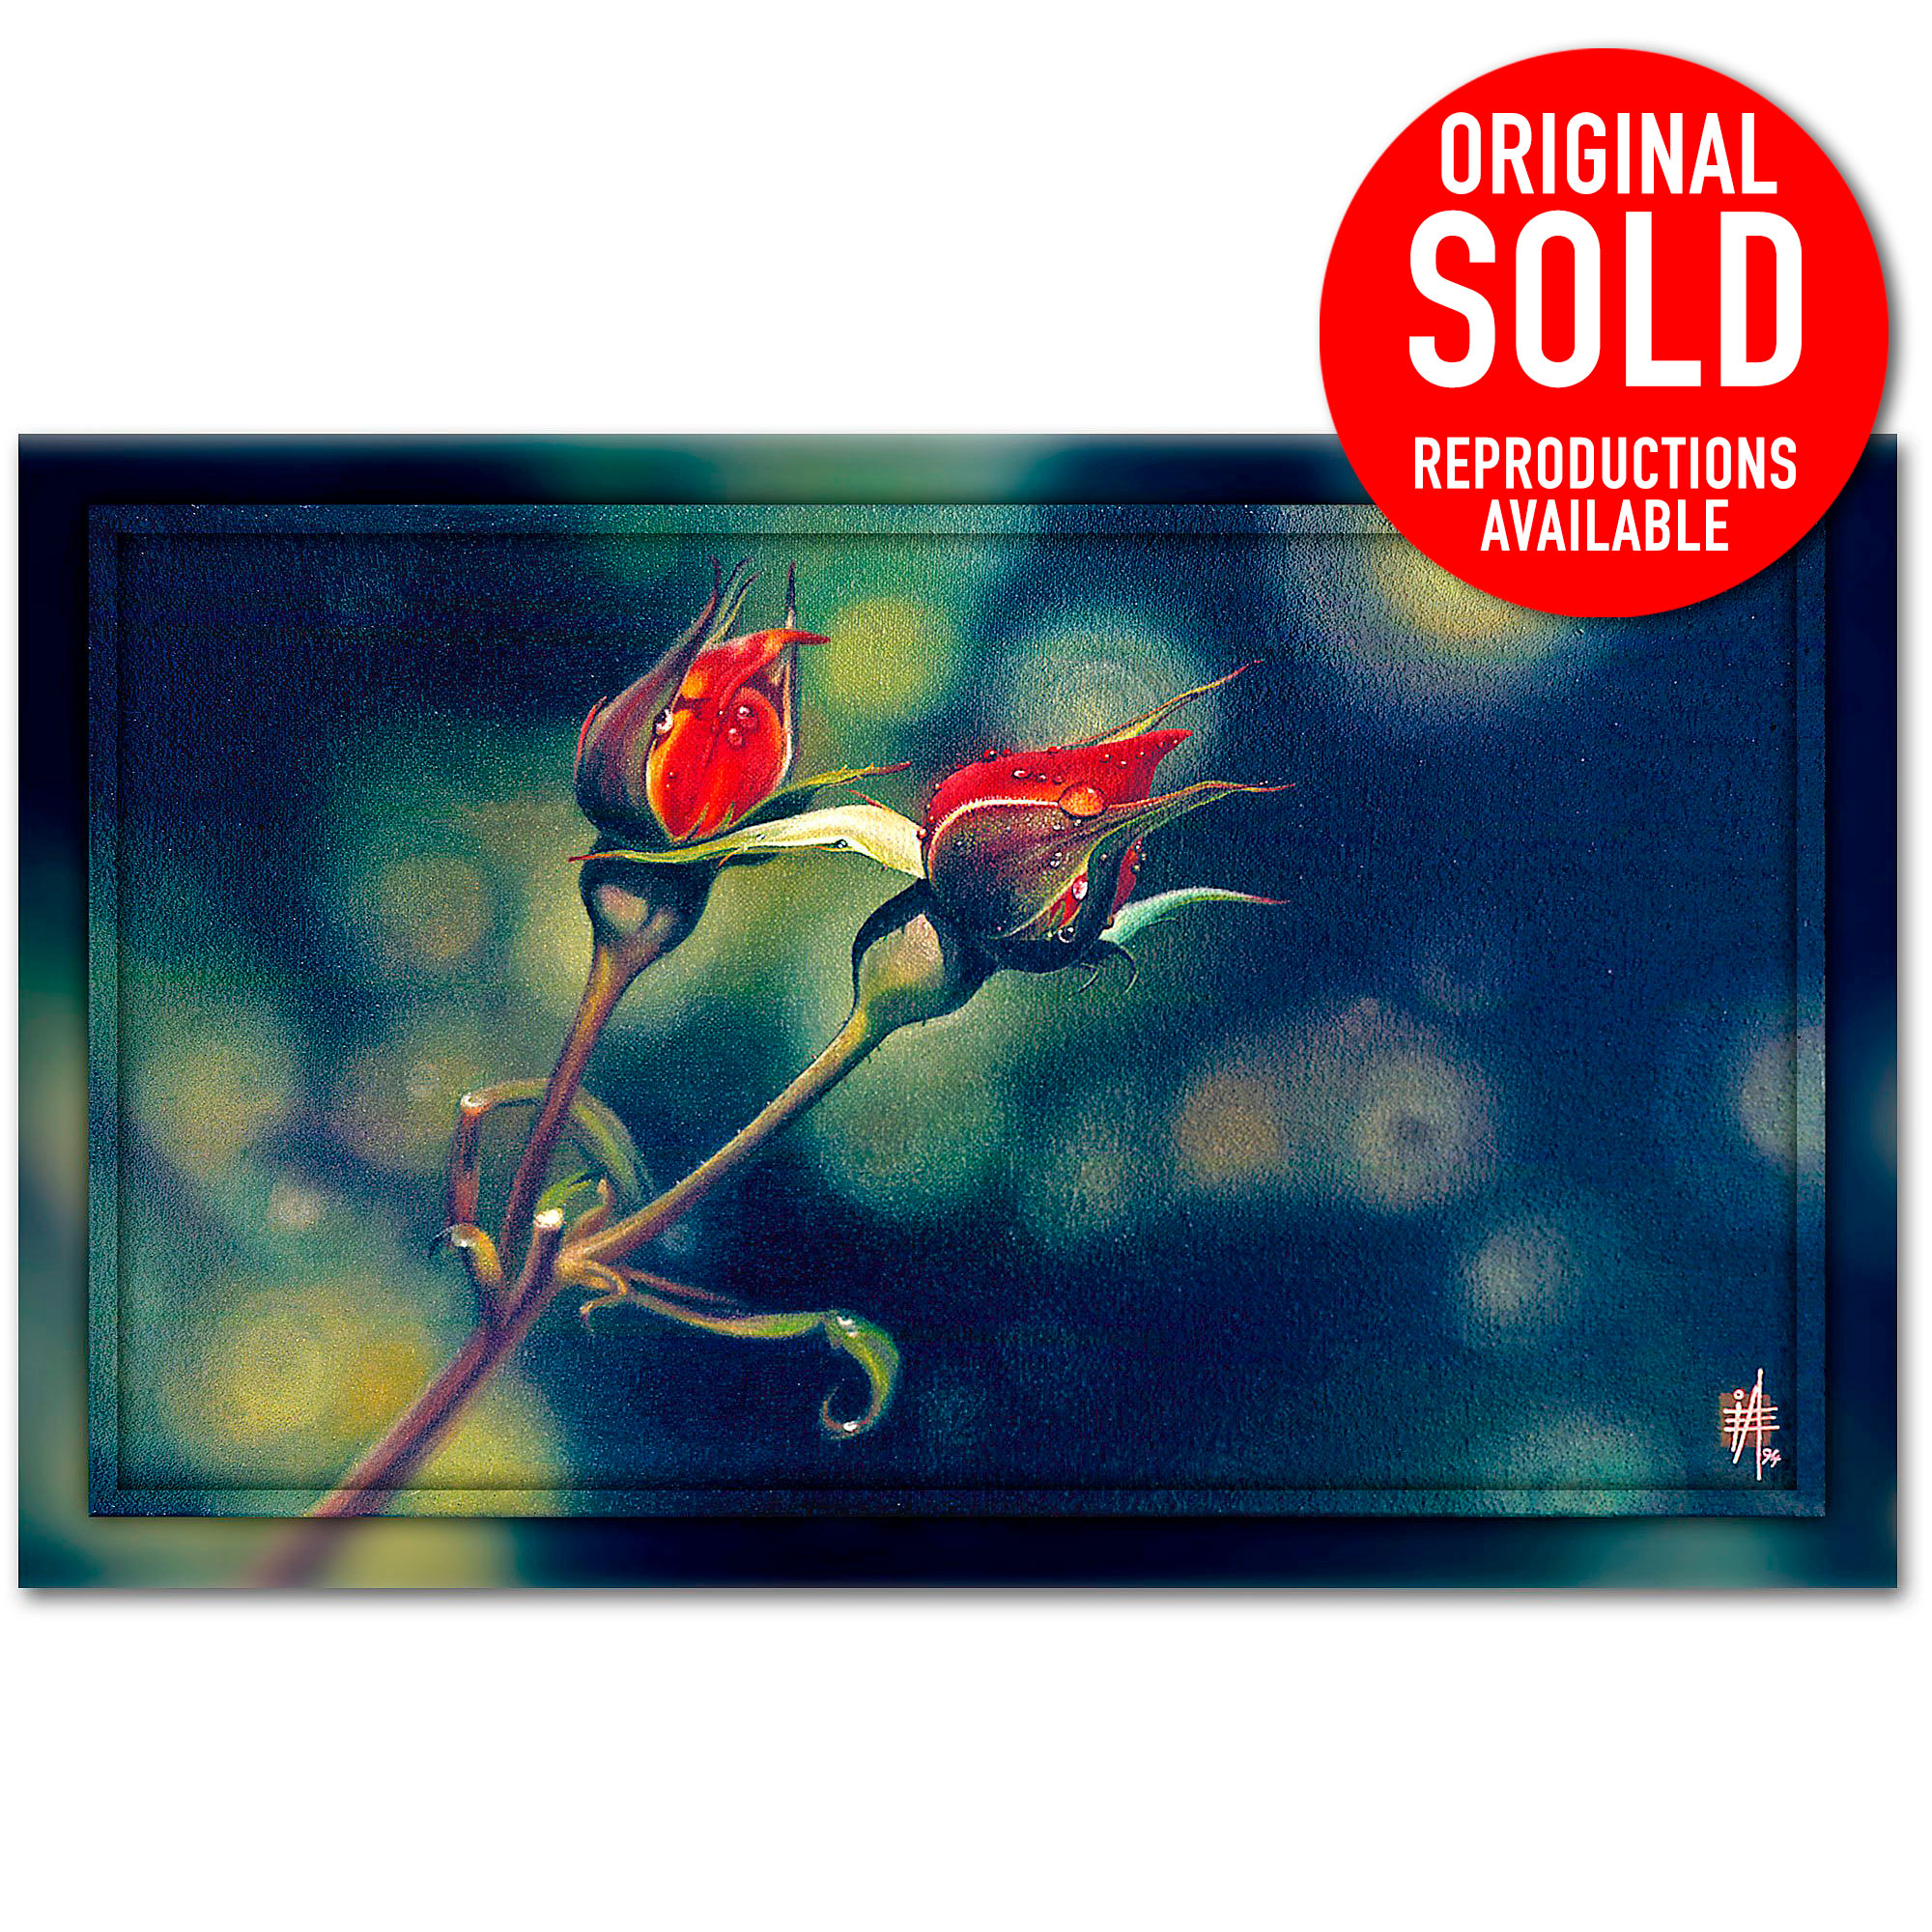 Red Rosebud photorealistic painting New Life Awakening, work Ian Anderson Fine Art